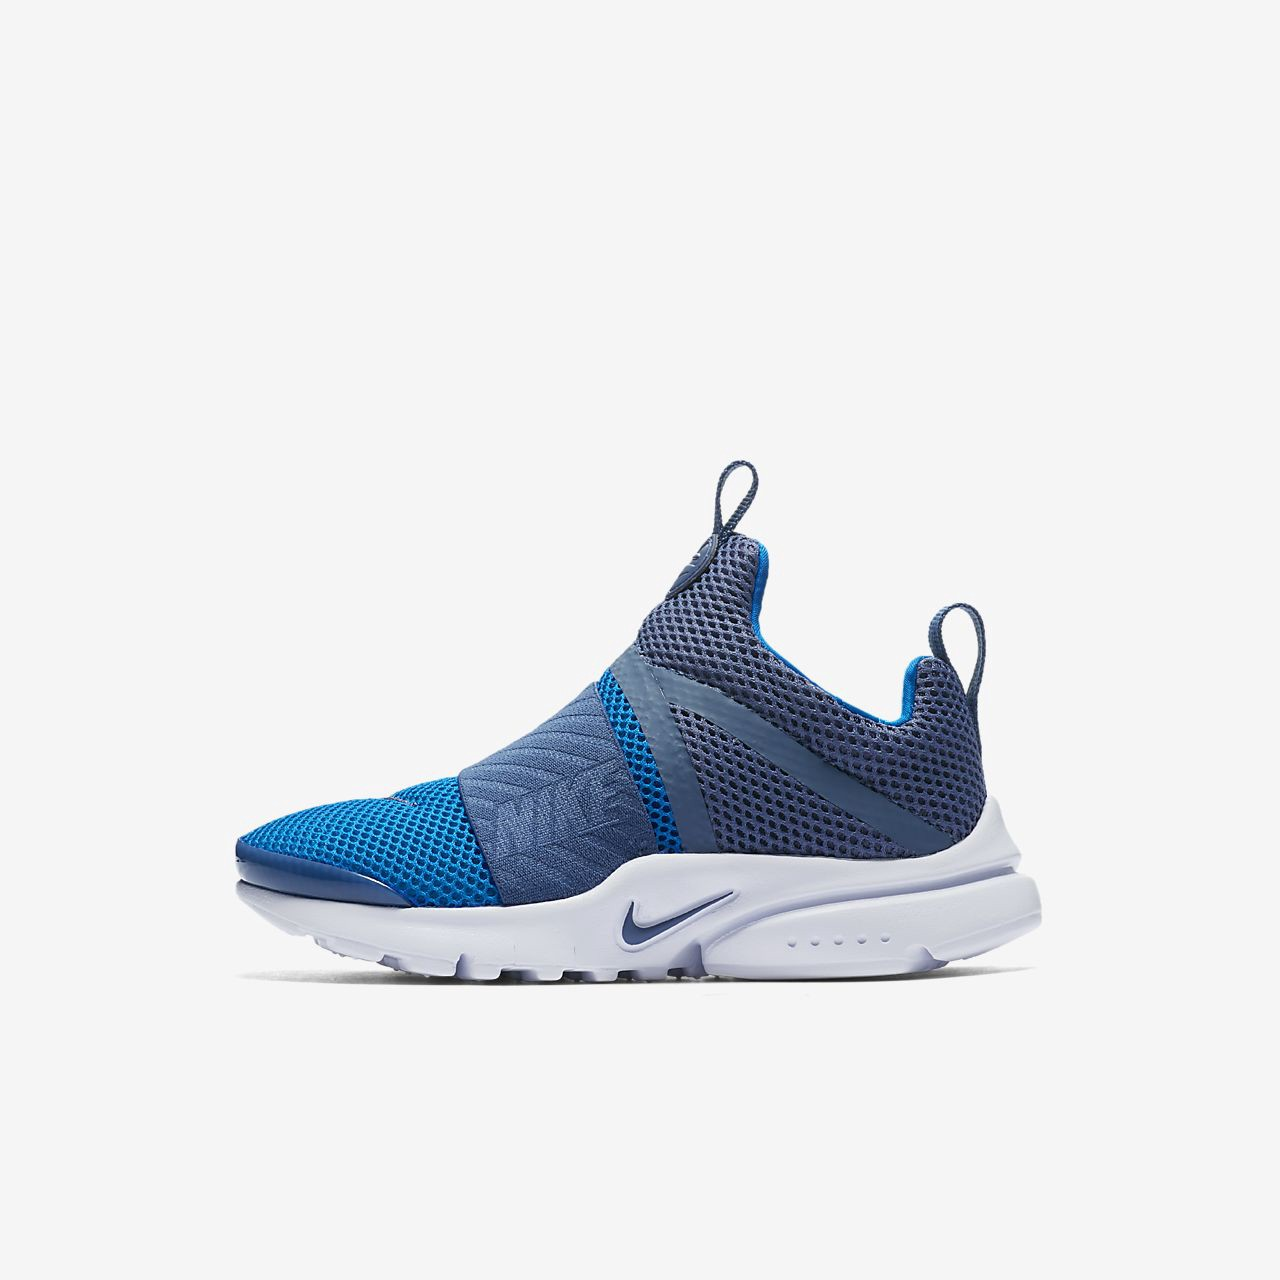 Nike Presto Extreme Little Kids Shoe